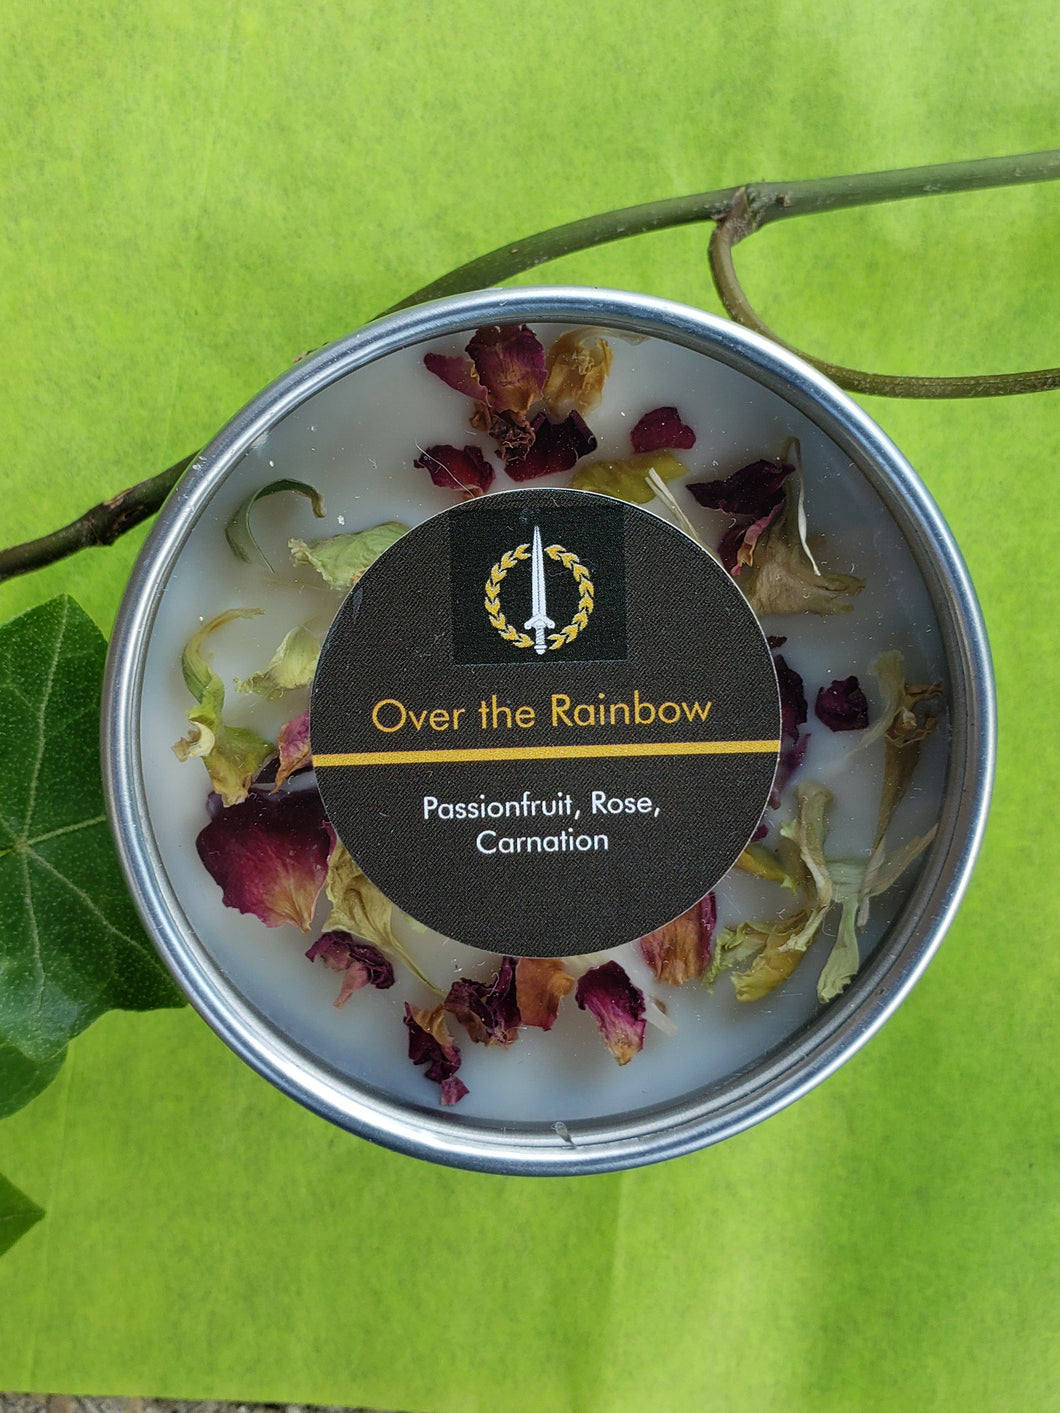 Over the Rainbow Candle